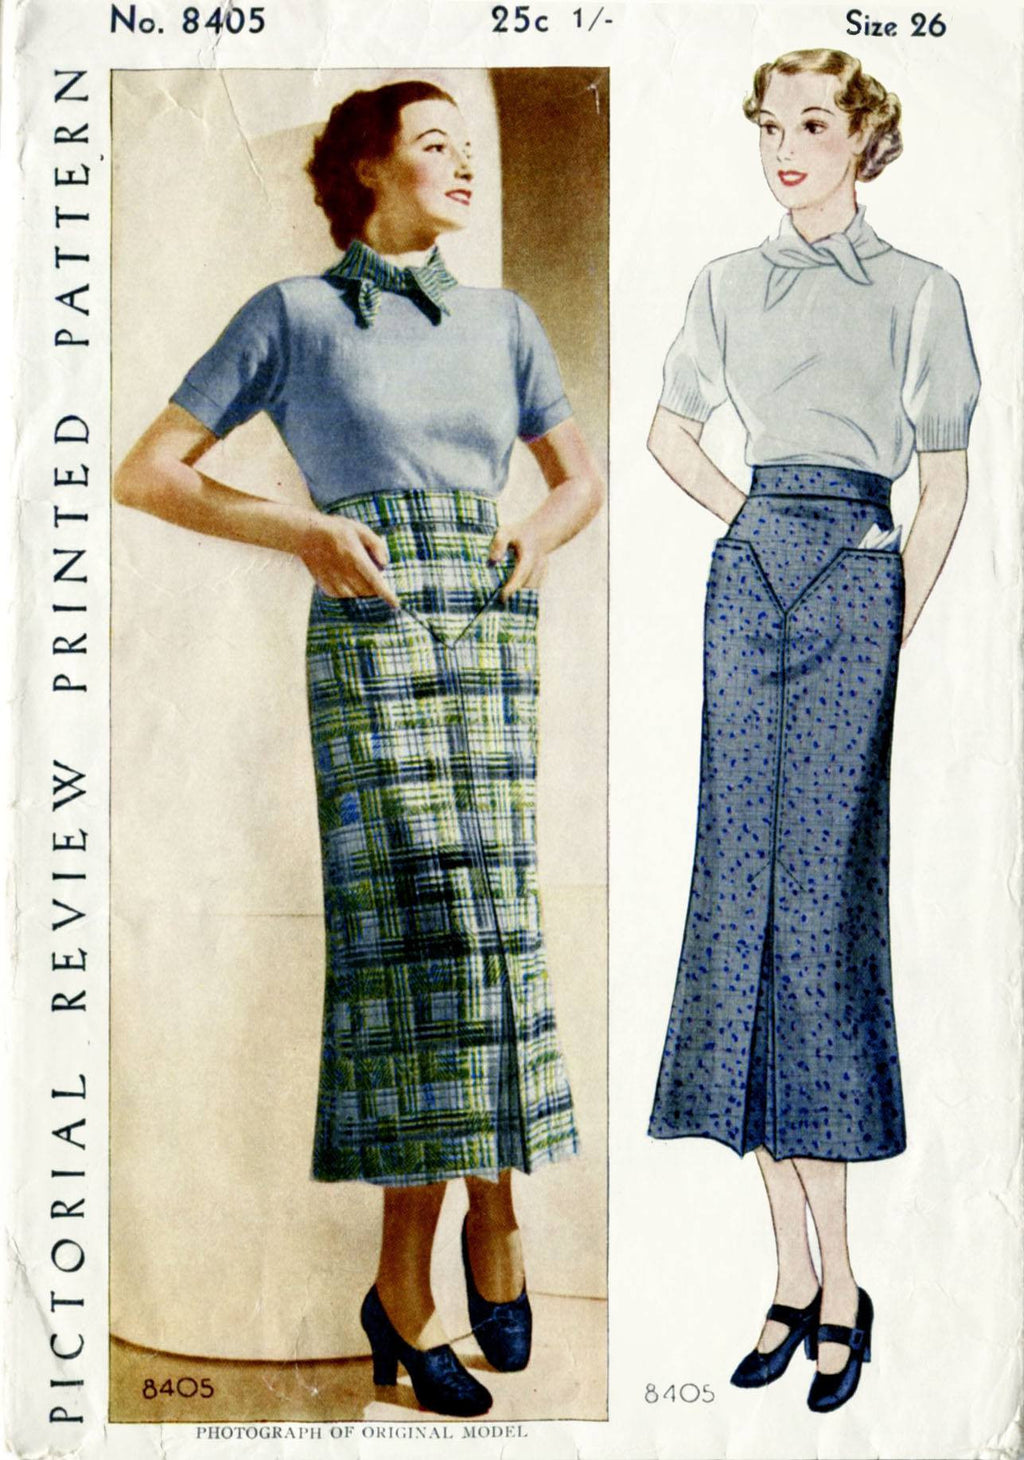 Pictorial Review 8405 1930s skirt vintage sewing pattern